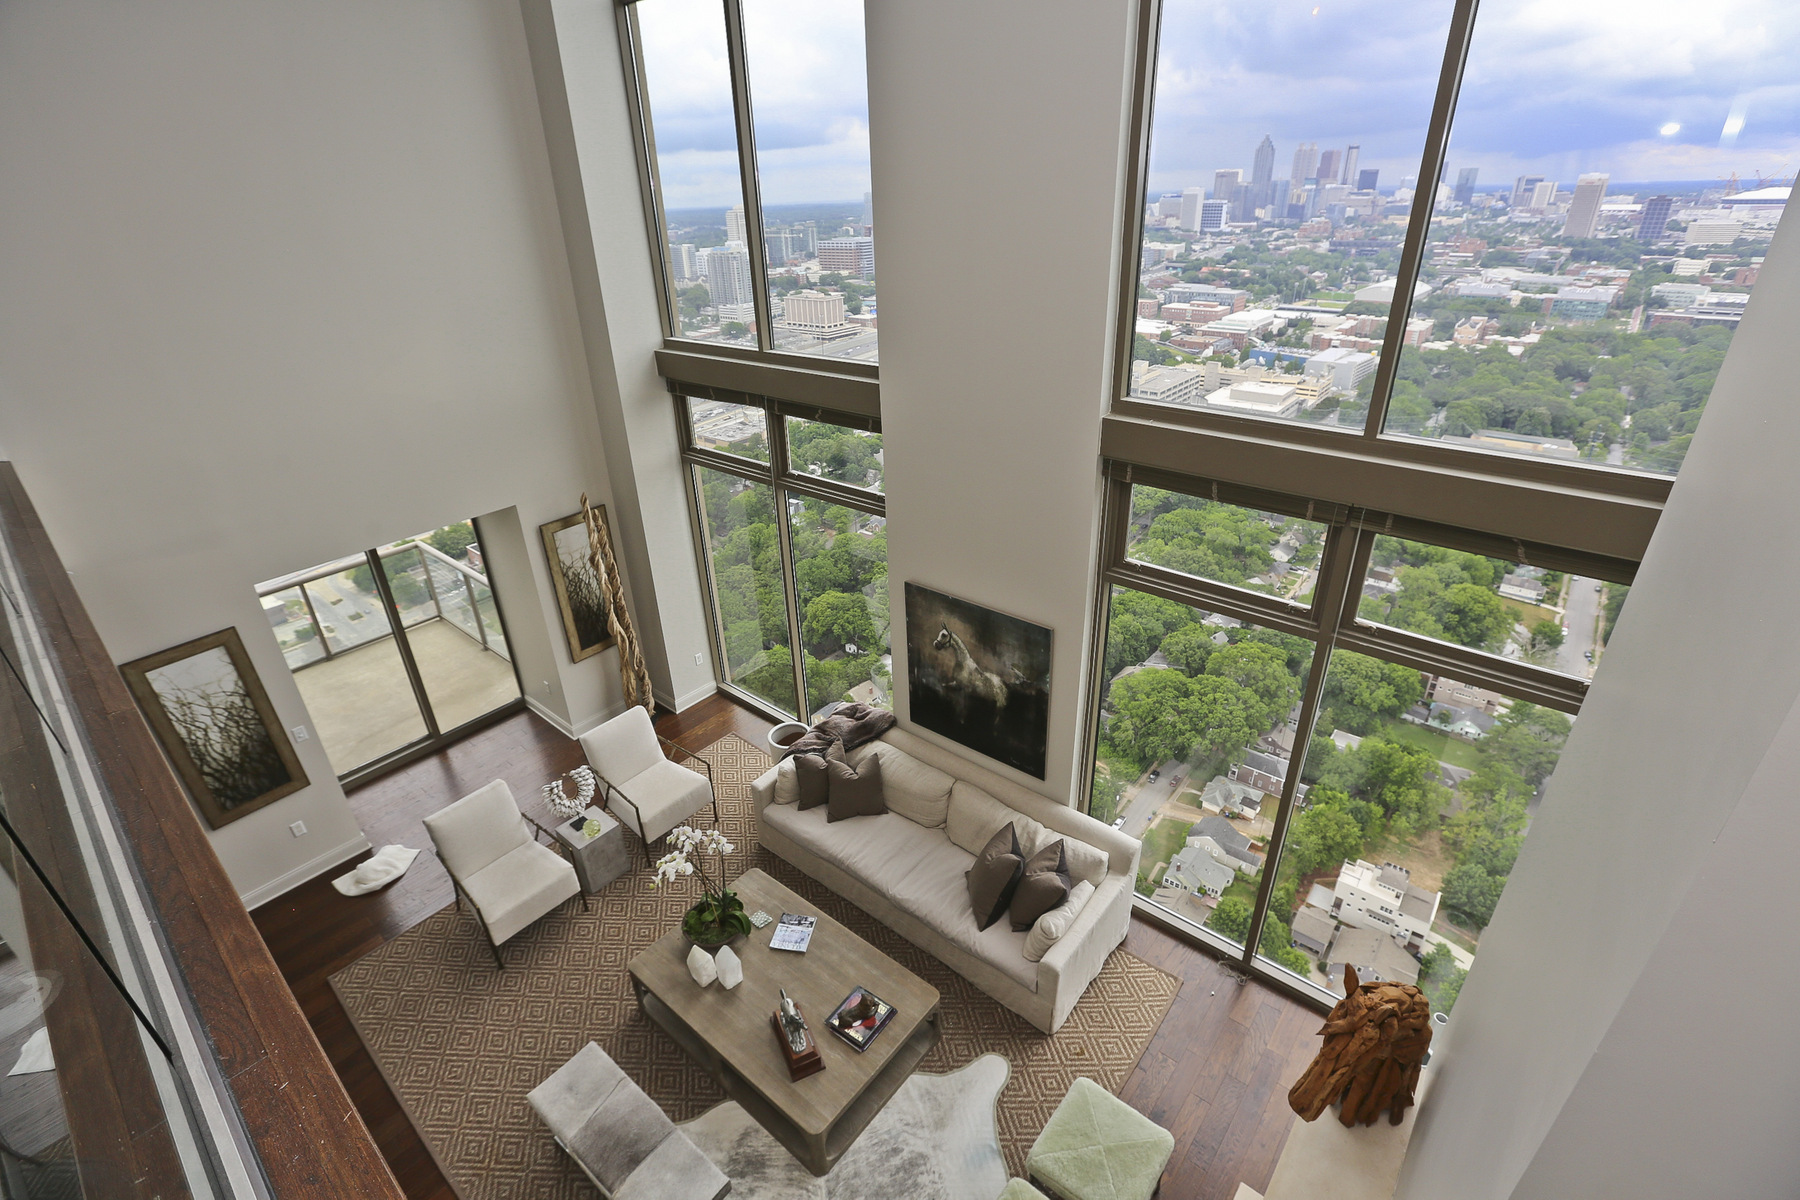 Condomínio para Venda às Contemporary Midtown Penthouse with the Best Views in Midtown! 270 17th Street NW Unit 4601 Atlanta, Geórgia, 30363 Estados Unidos